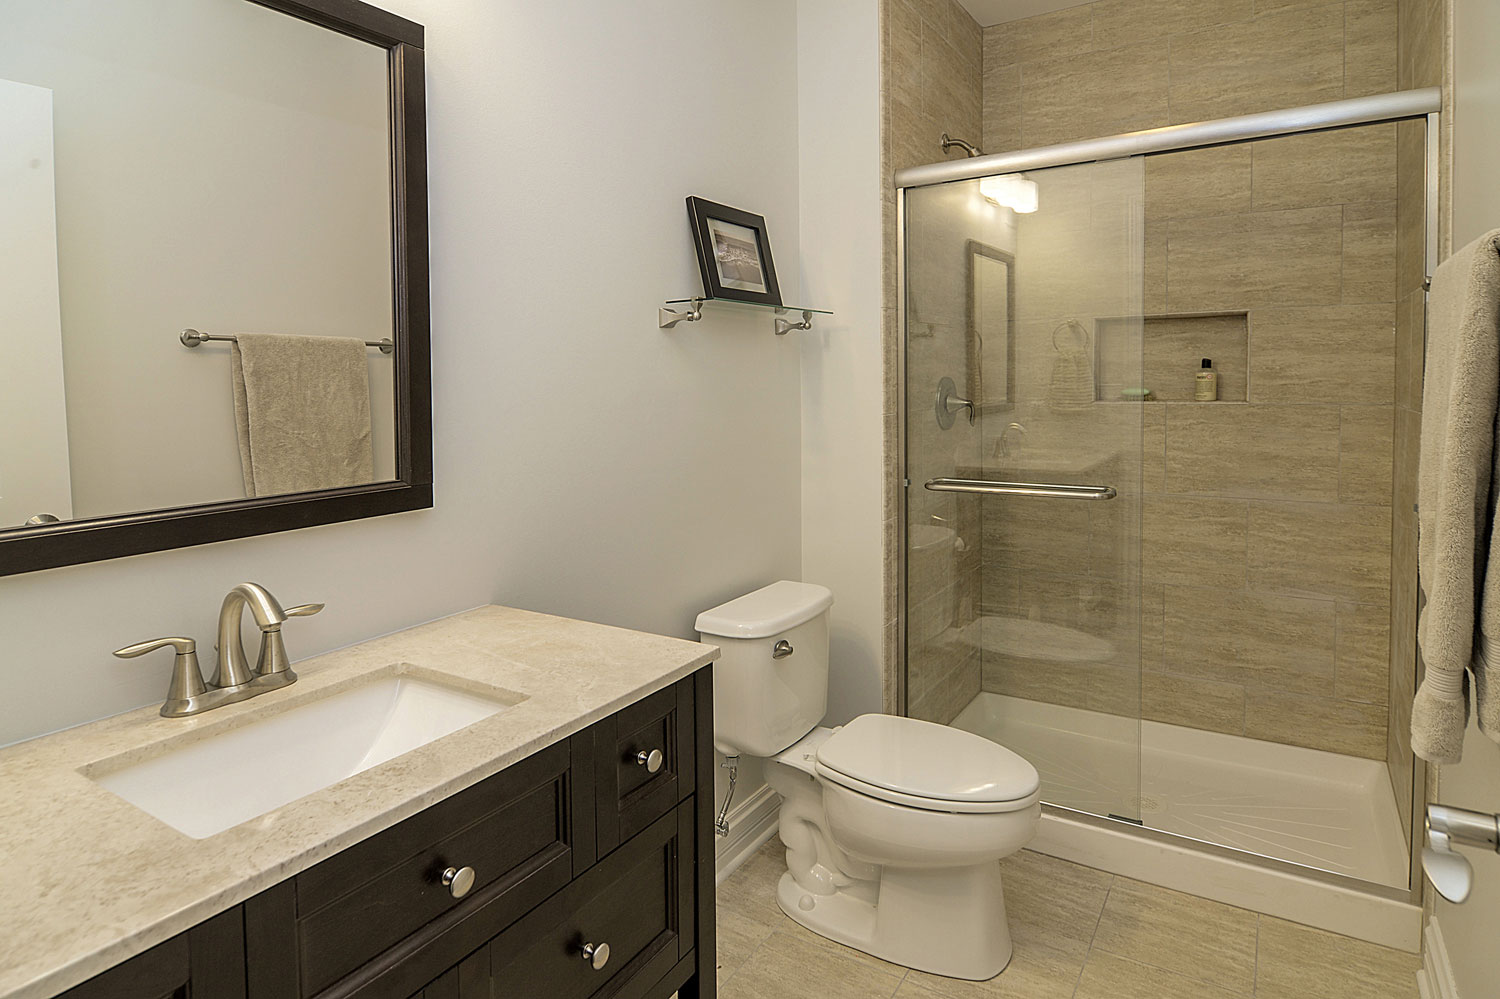 Steve Amp Emily S Hall Bathroom Remodel Pictures Home Remodeling Contractors Sebring Services